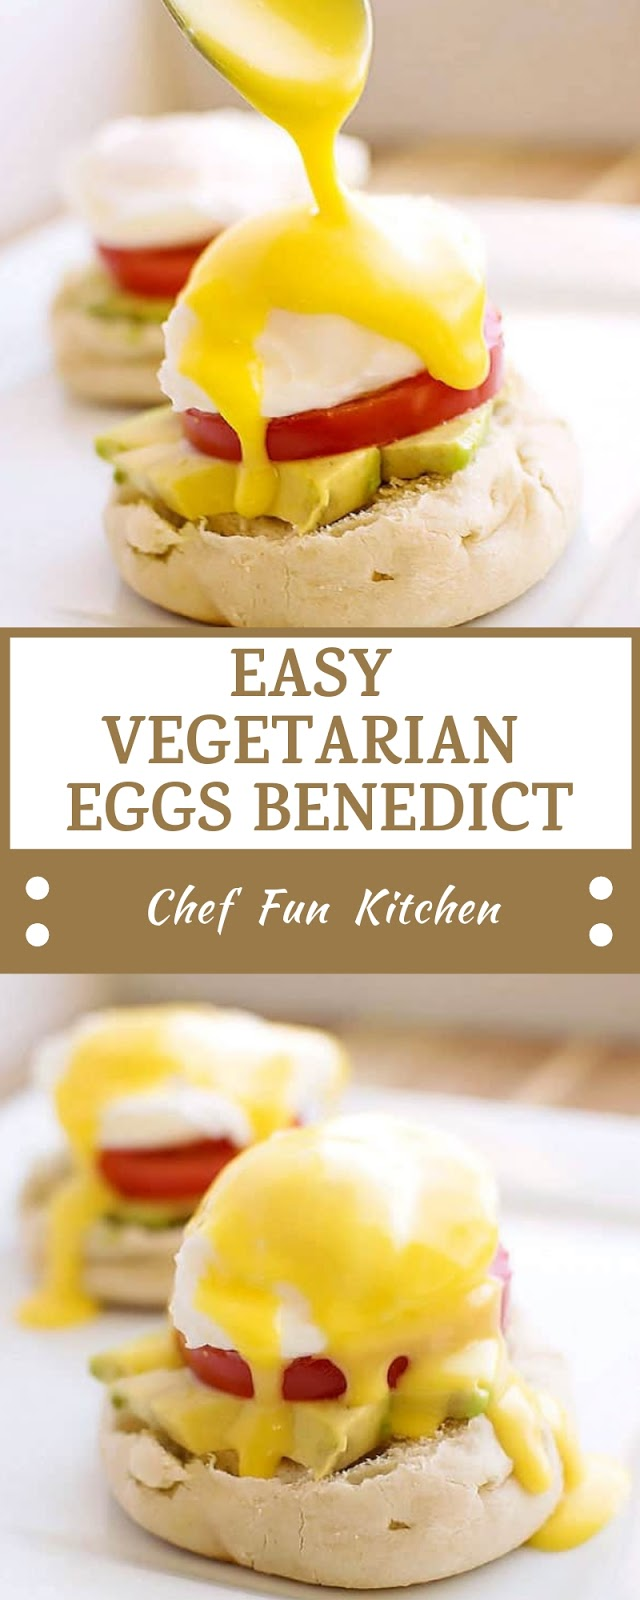 EASY VEGETARIAN EGGS BENEDICT